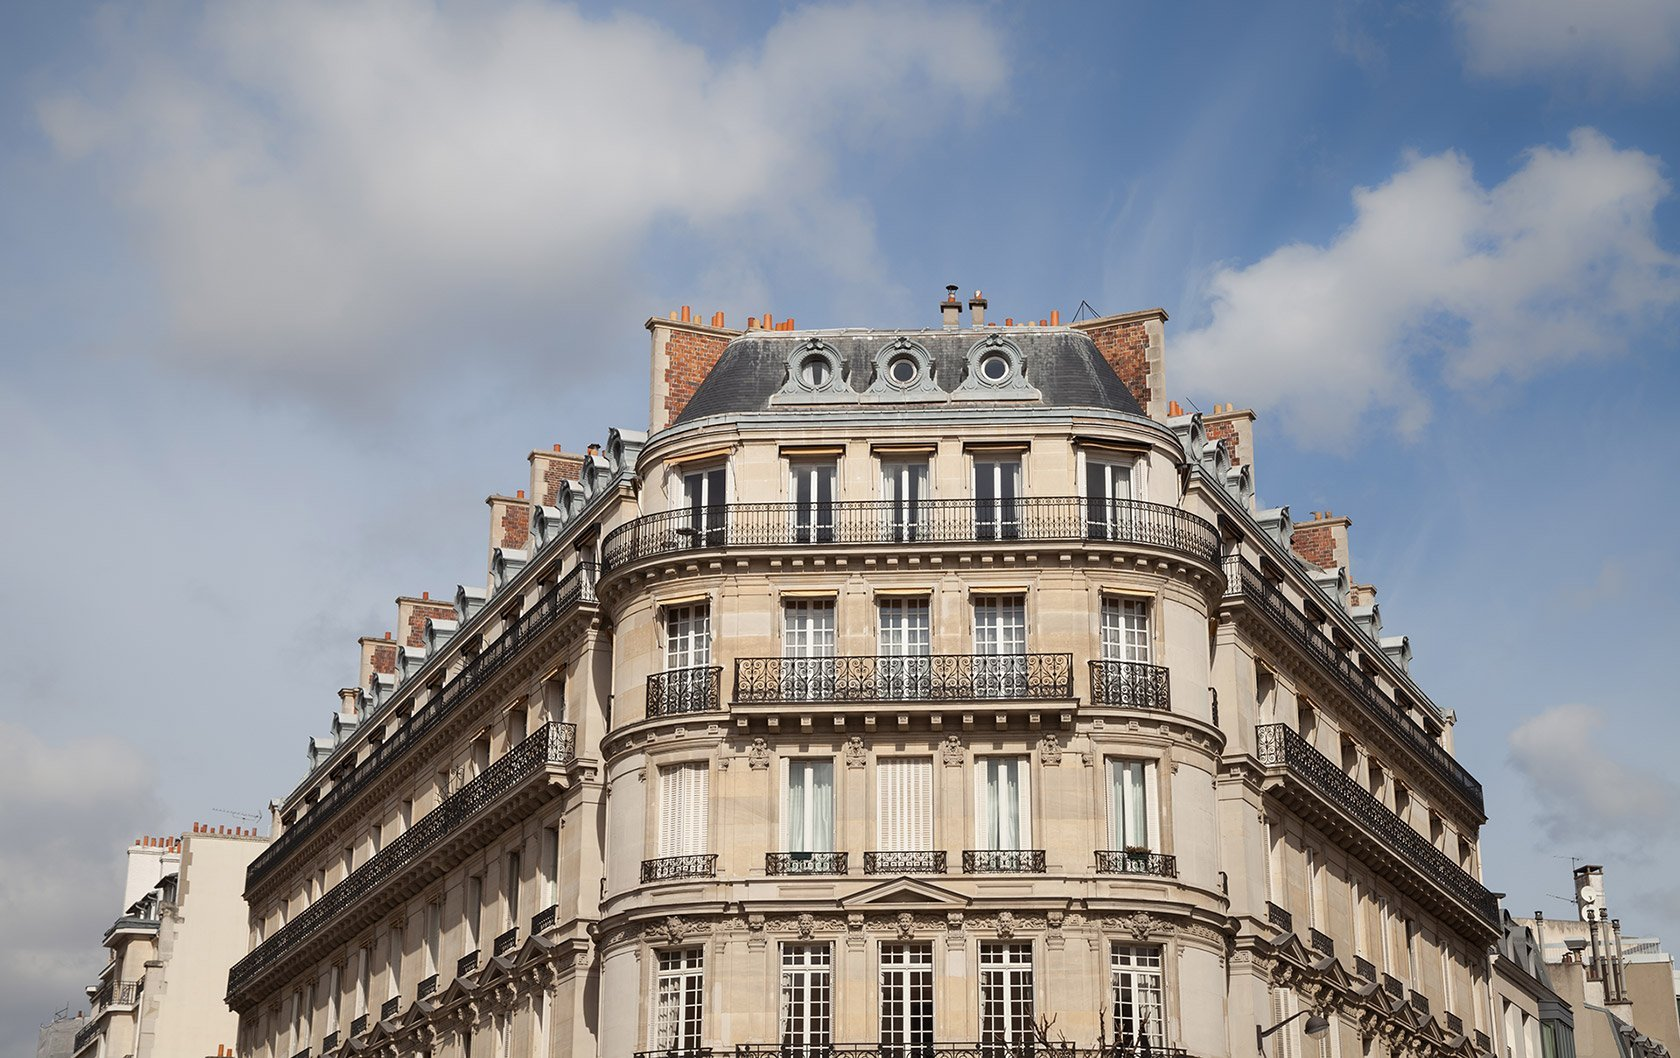 March 2019 Paris Real Estate Report: A Healthy Market Expected to Continue